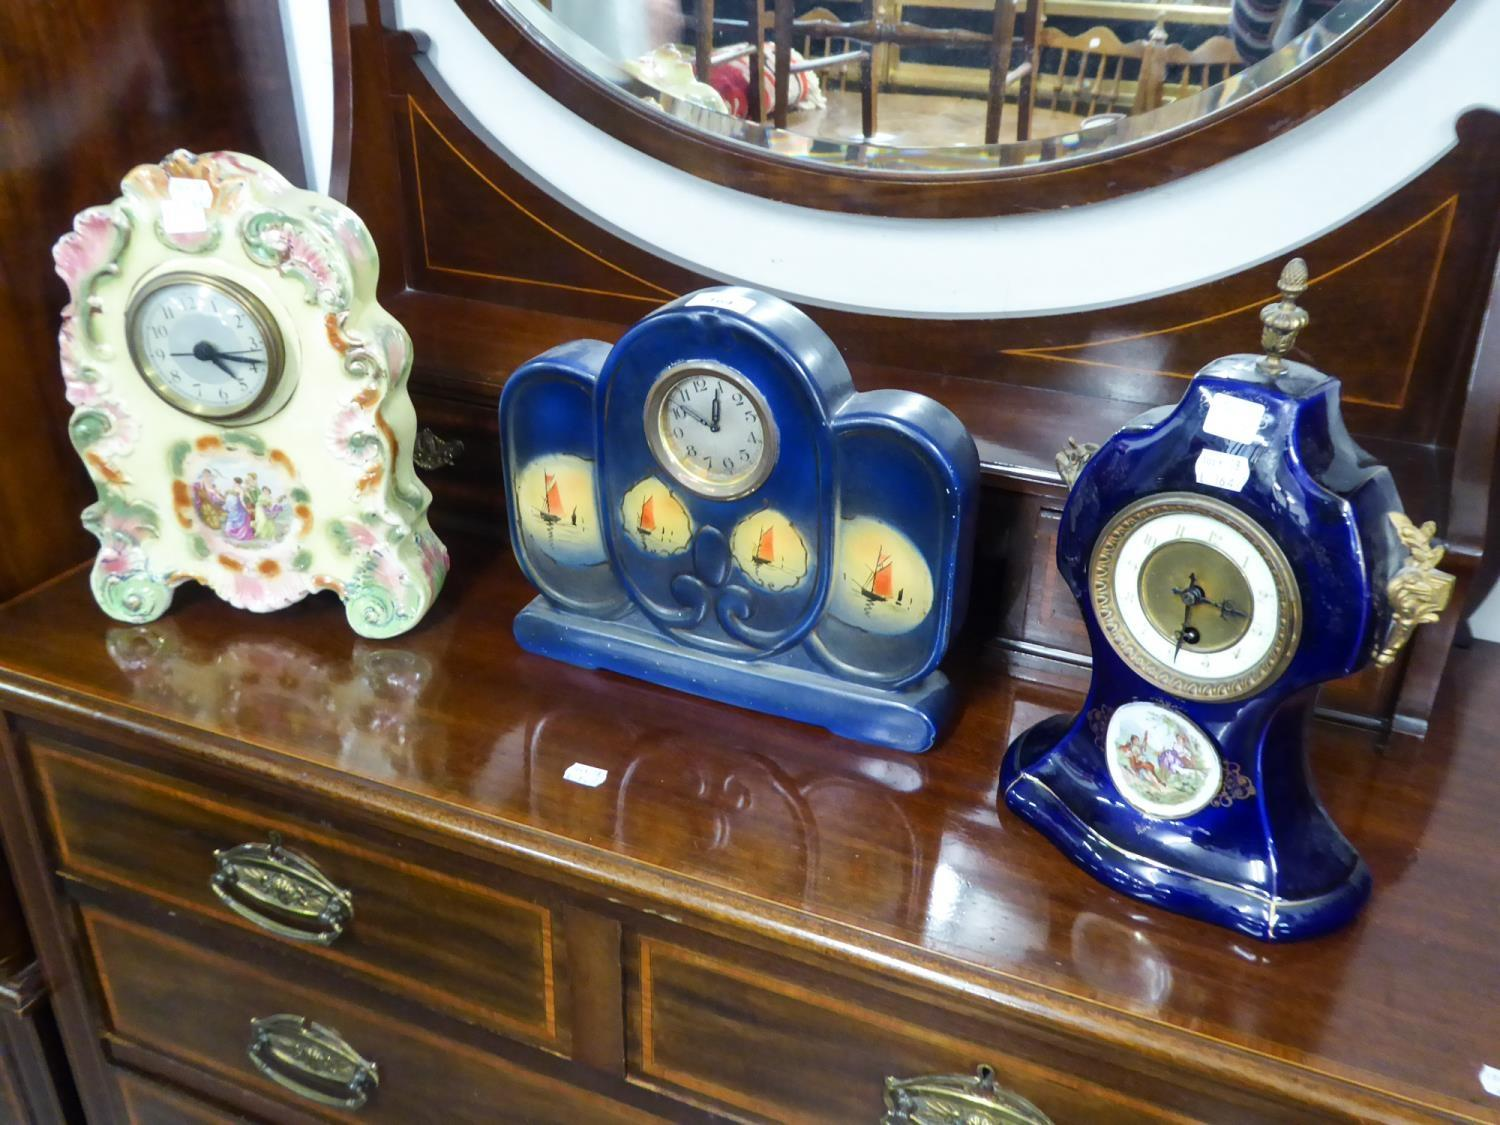 Lot 164 - EARLY 20TH CENTURY MANTEL CLOCK IN BLUE GLAZED POTTERY CASE OF WAISTED FORM WITH GILT METAL